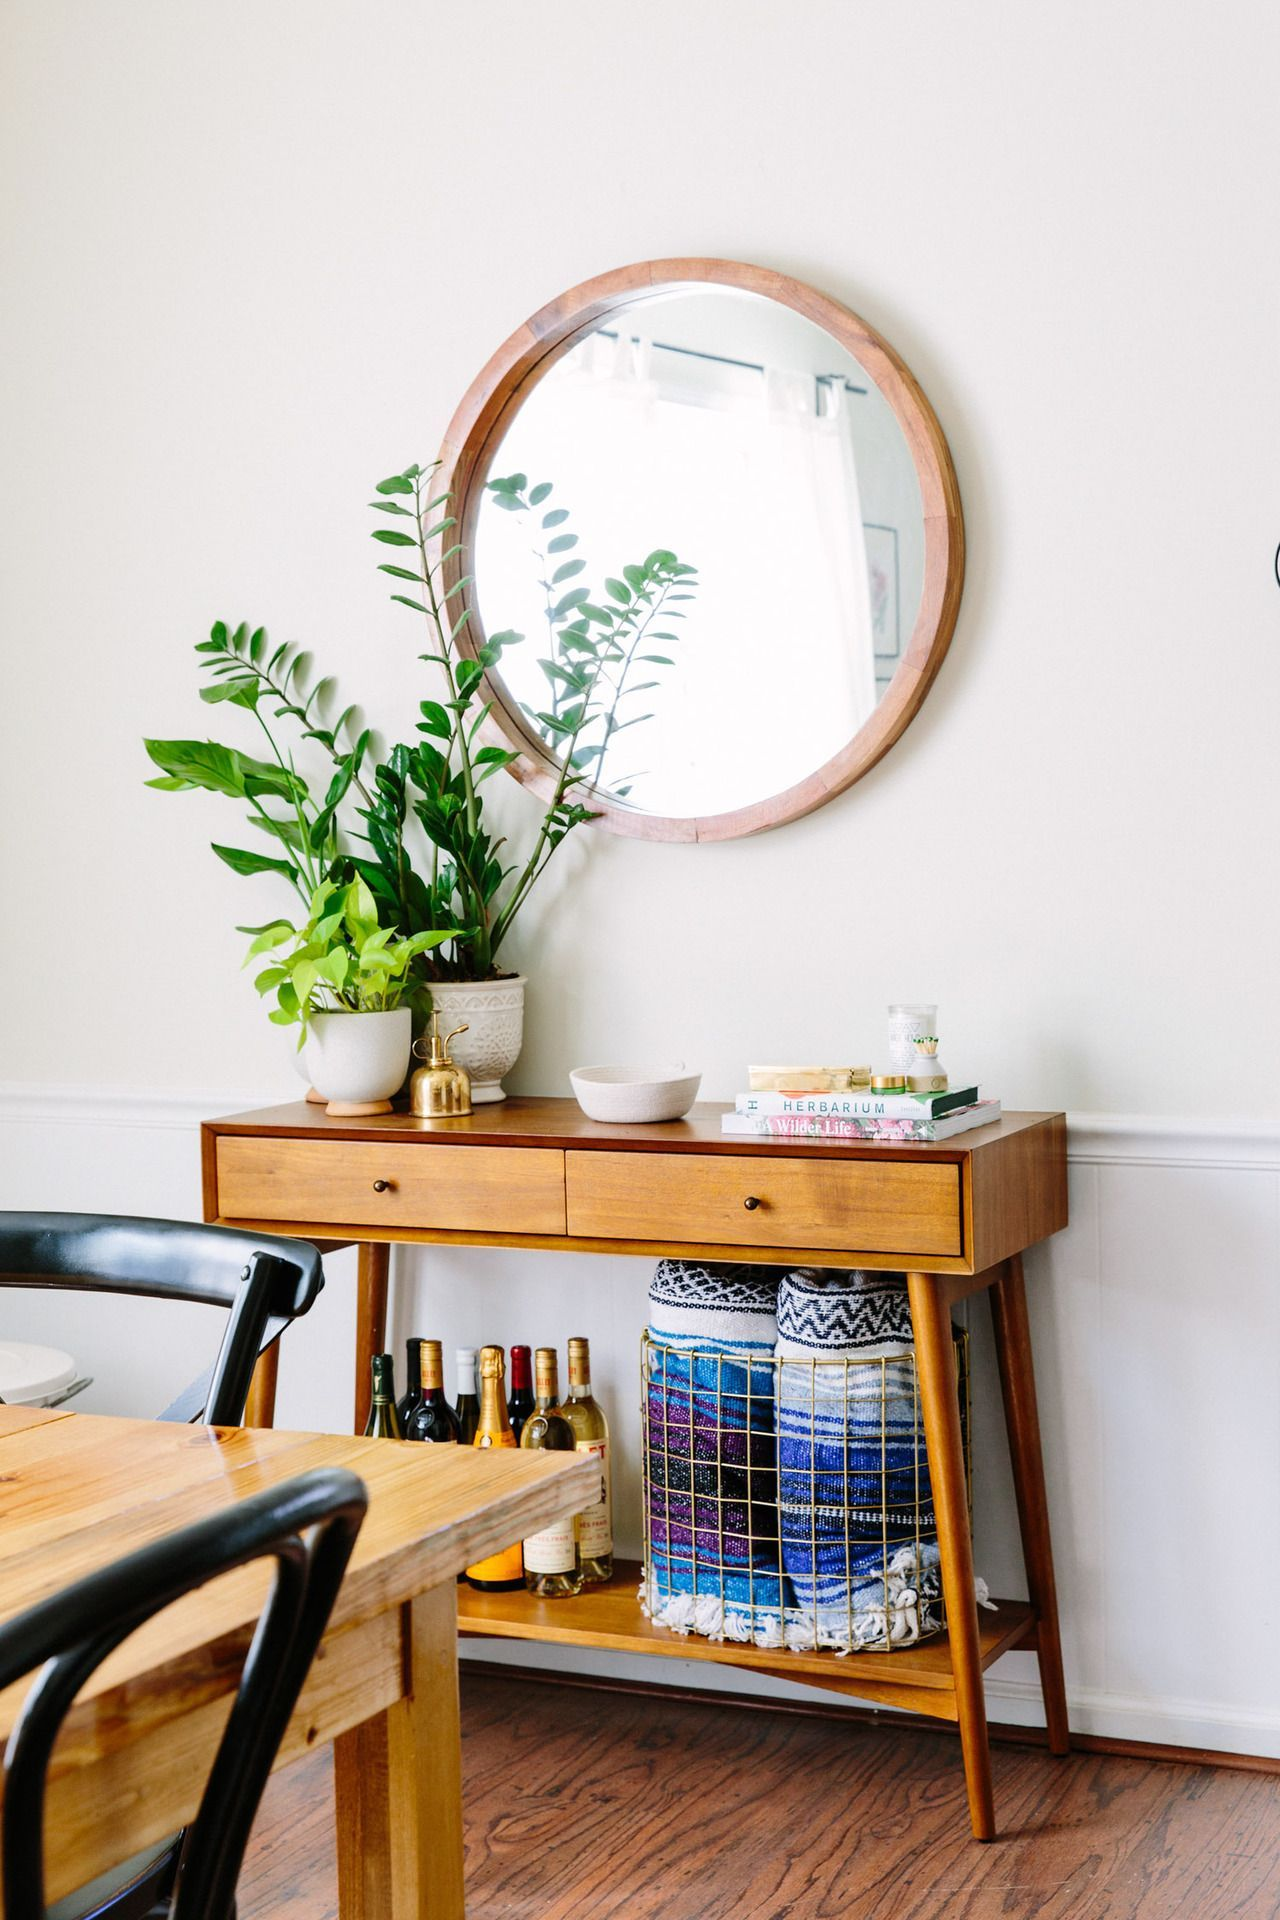 West Elm Mid Century Console Table For 399 Vs Cupertino 155 Copycatchic Luxe Living Less Budget Home Decor And Design